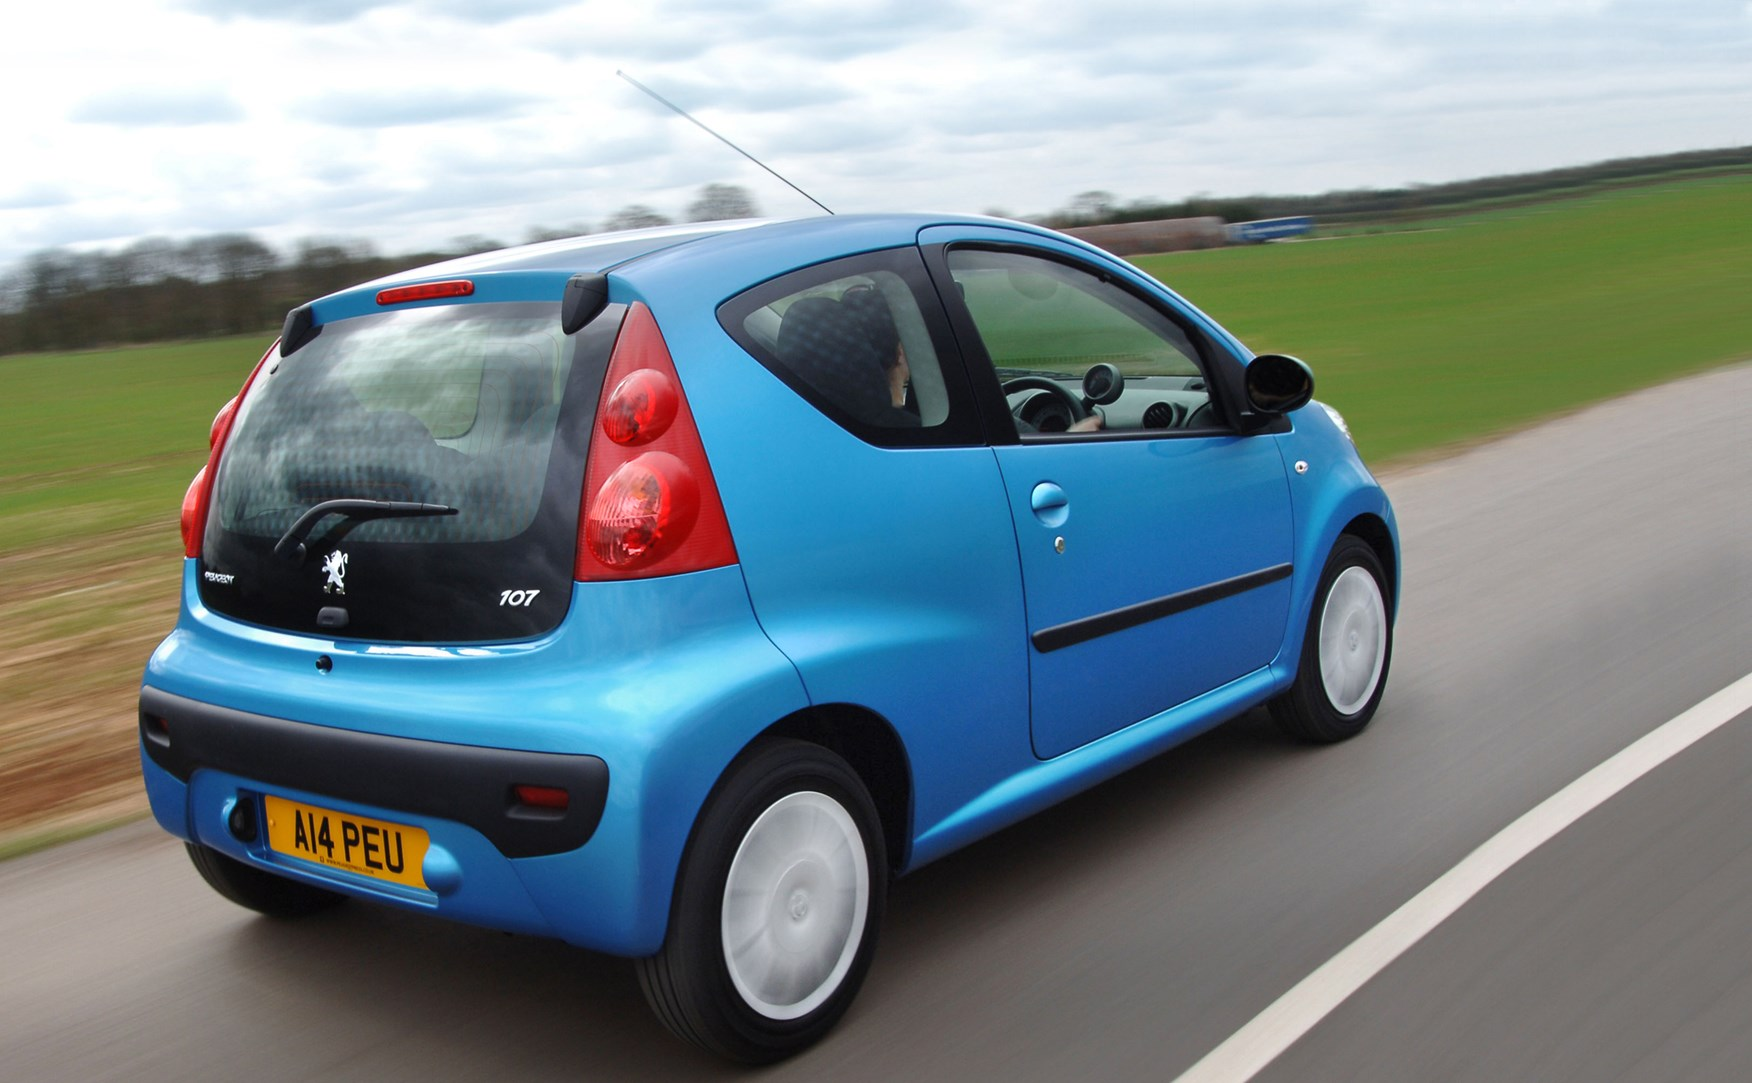 peugeot 107 hatchback 2005 2014 features equipment and accessories parkers. Black Bedroom Furniture Sets. Home Design Ideas